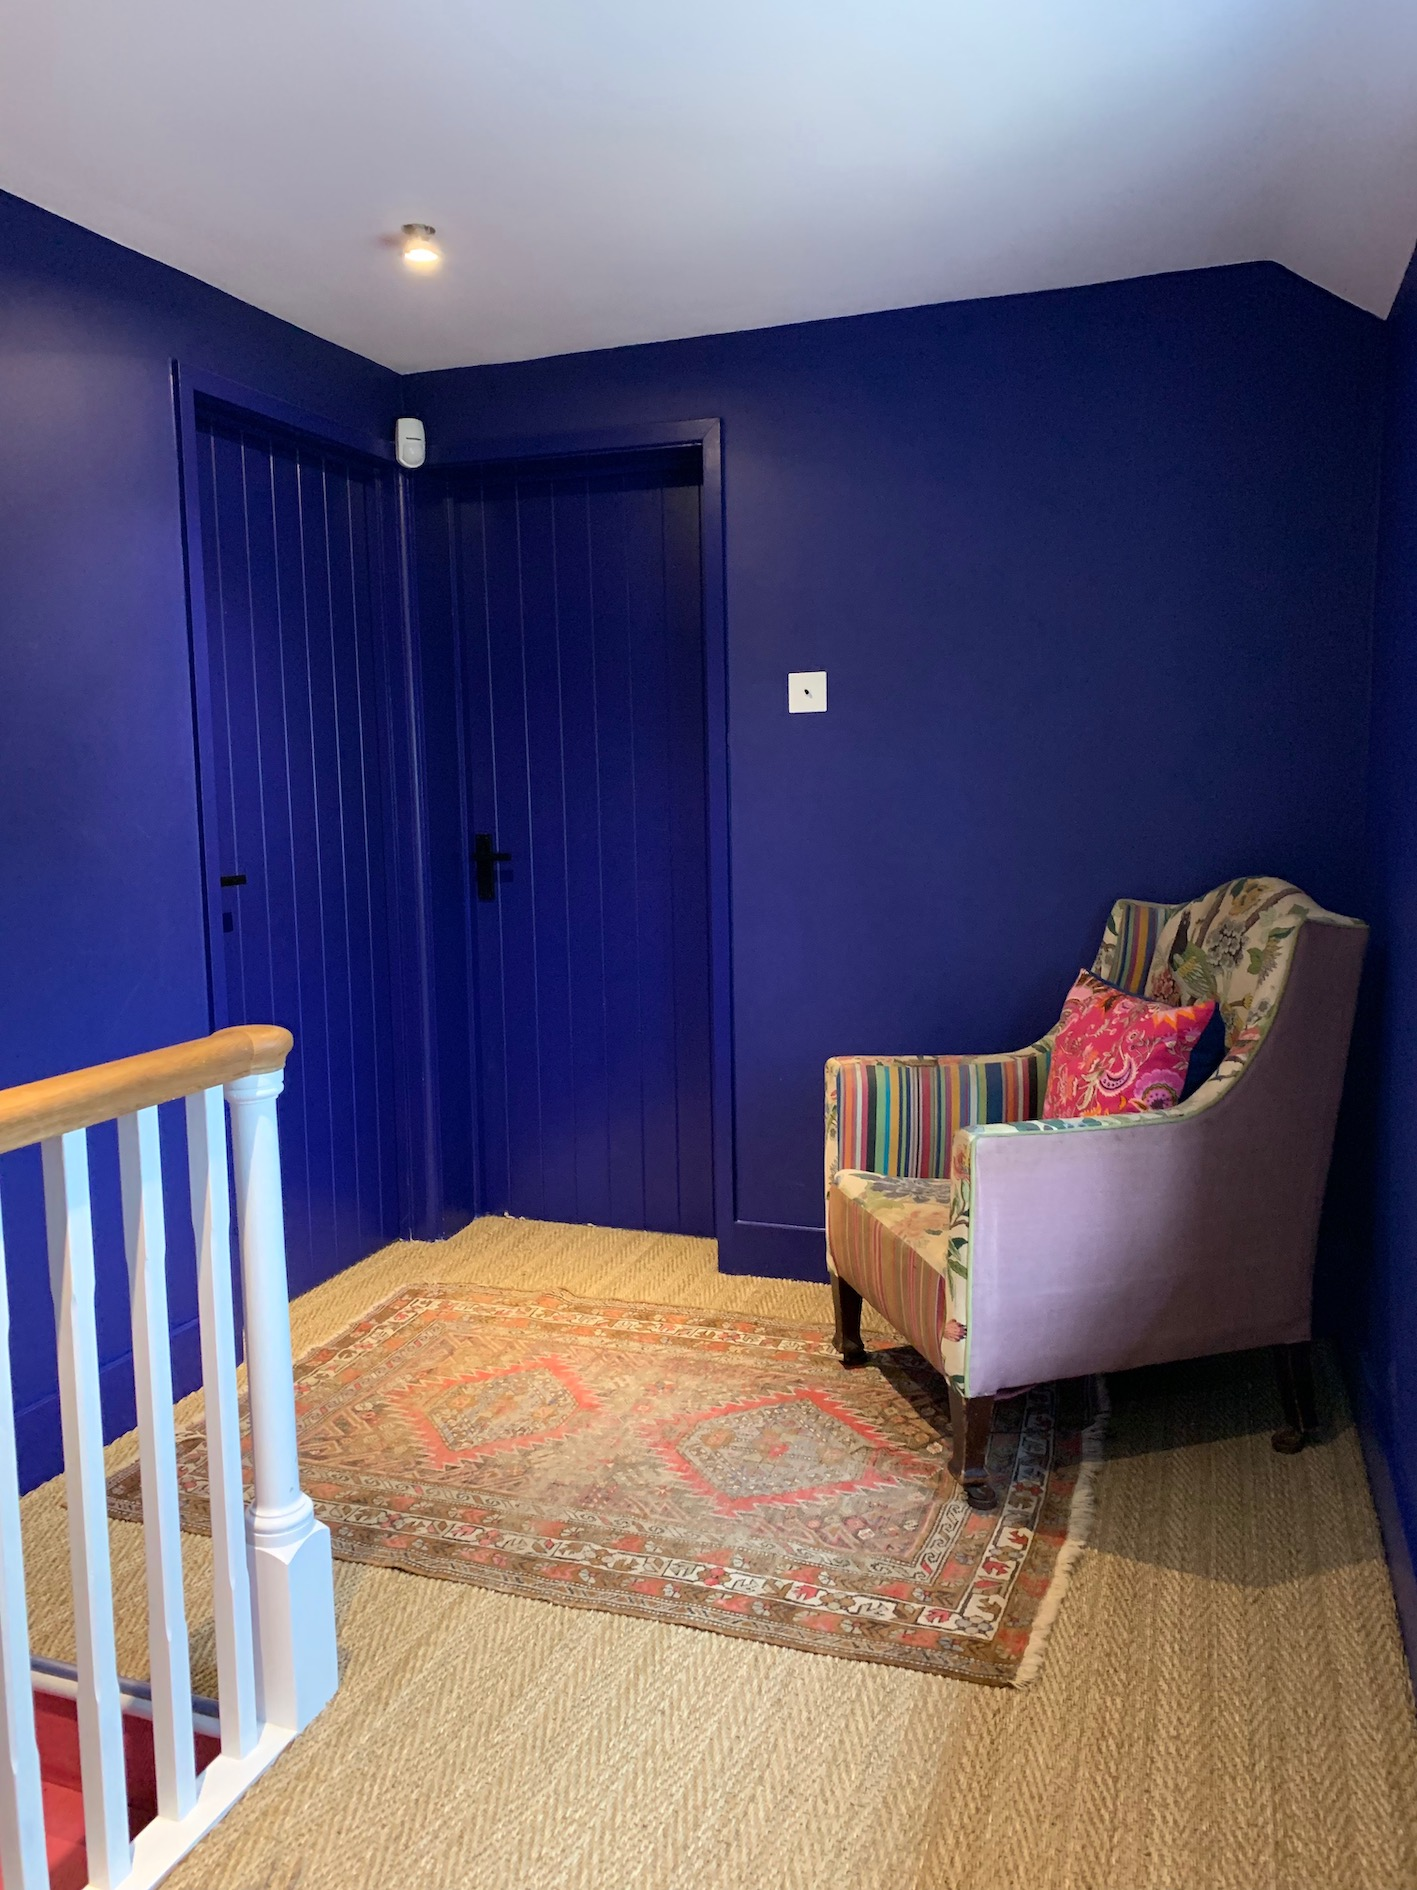 Interior designer Sophie Robinson shows how to decorate walls, woodwork, skirting, doors and architrave. by painting your wall and wood work the same colour you create a more spacious and modern look